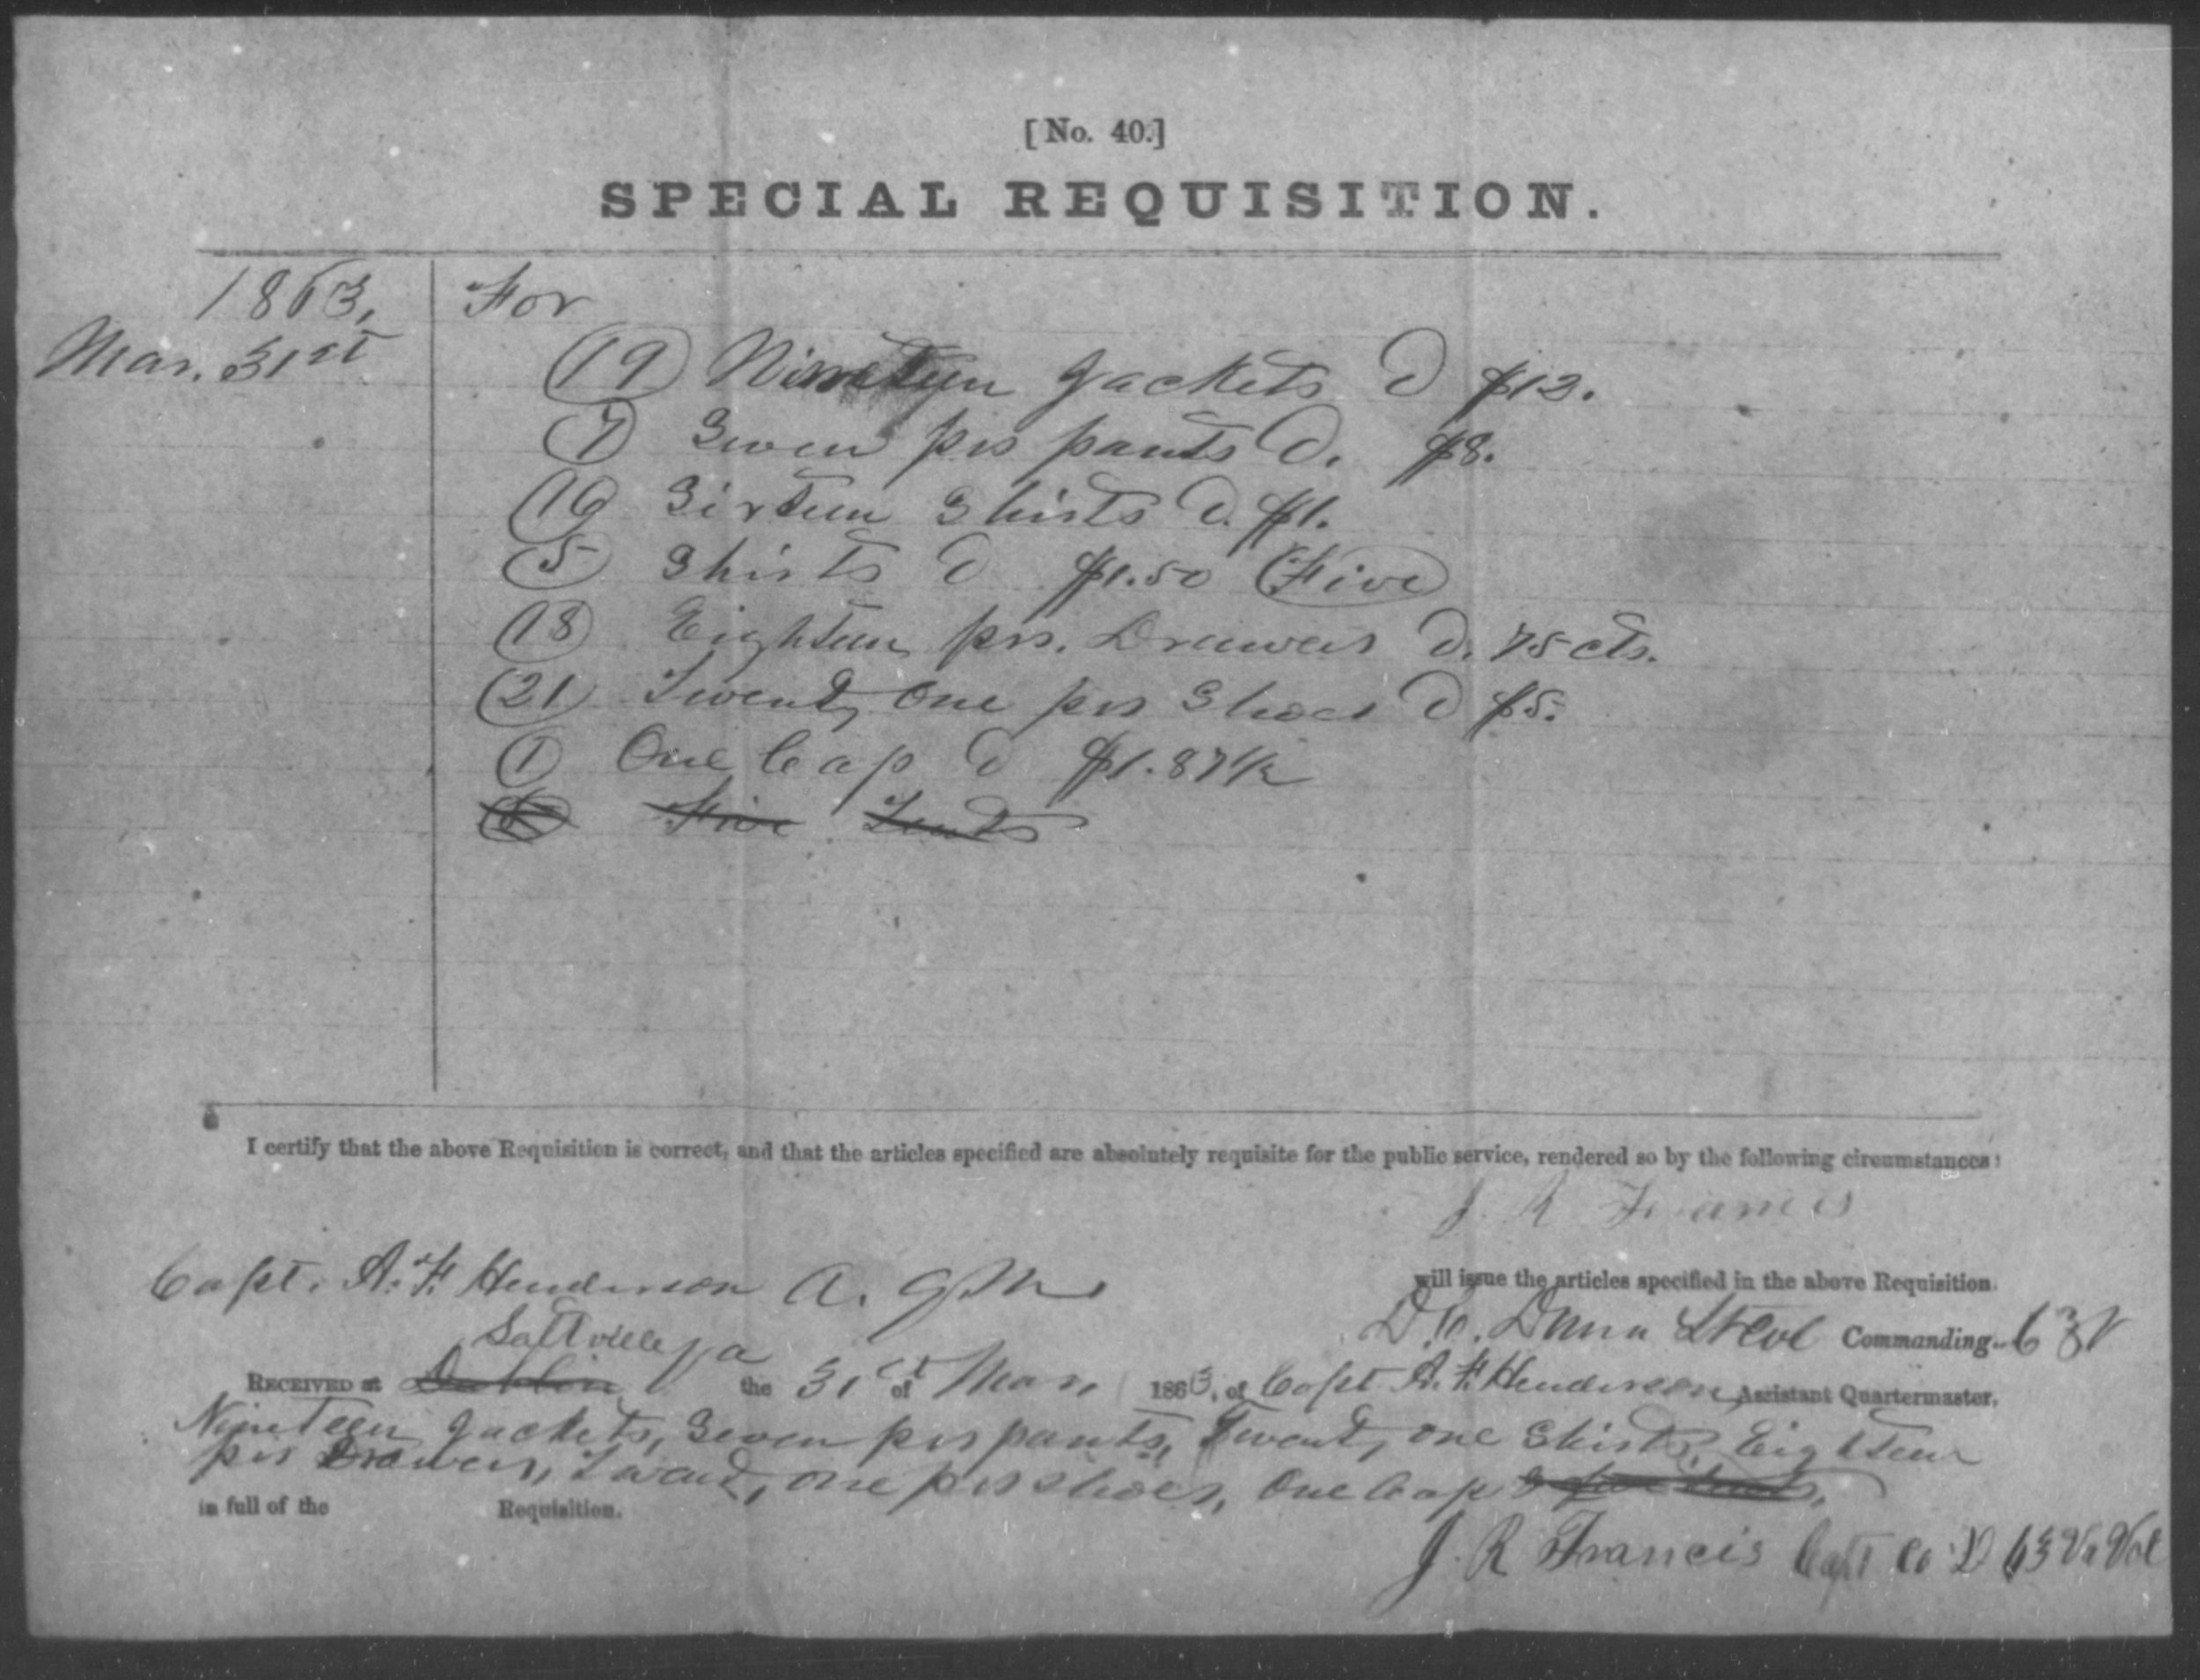 Figure 6 - Issue to Co. D 63rd VA, 31 Mar 1863